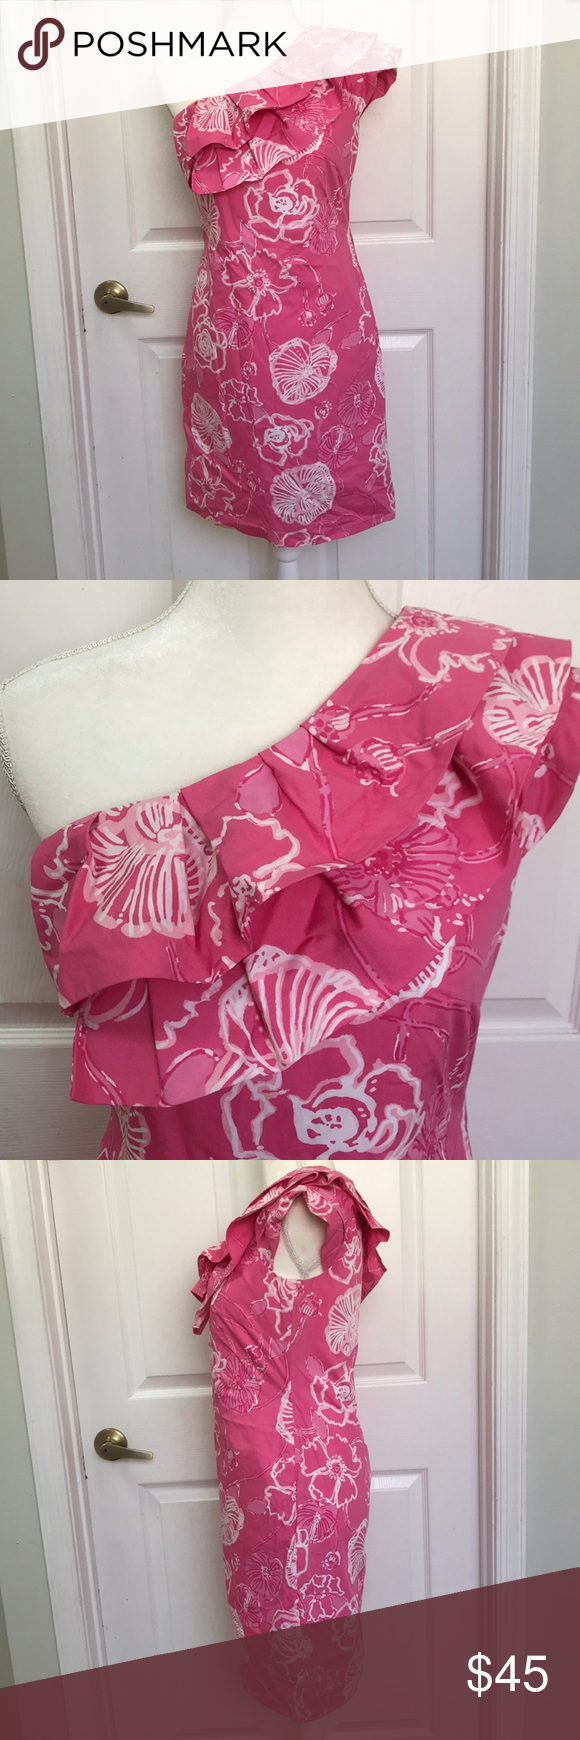 73a9d00b66d Lilly Pulitzer one shoulder floral dress size 2 Glamorous and classic Lilly  Pulitzer one shoulder dress size 2 in very good condition.